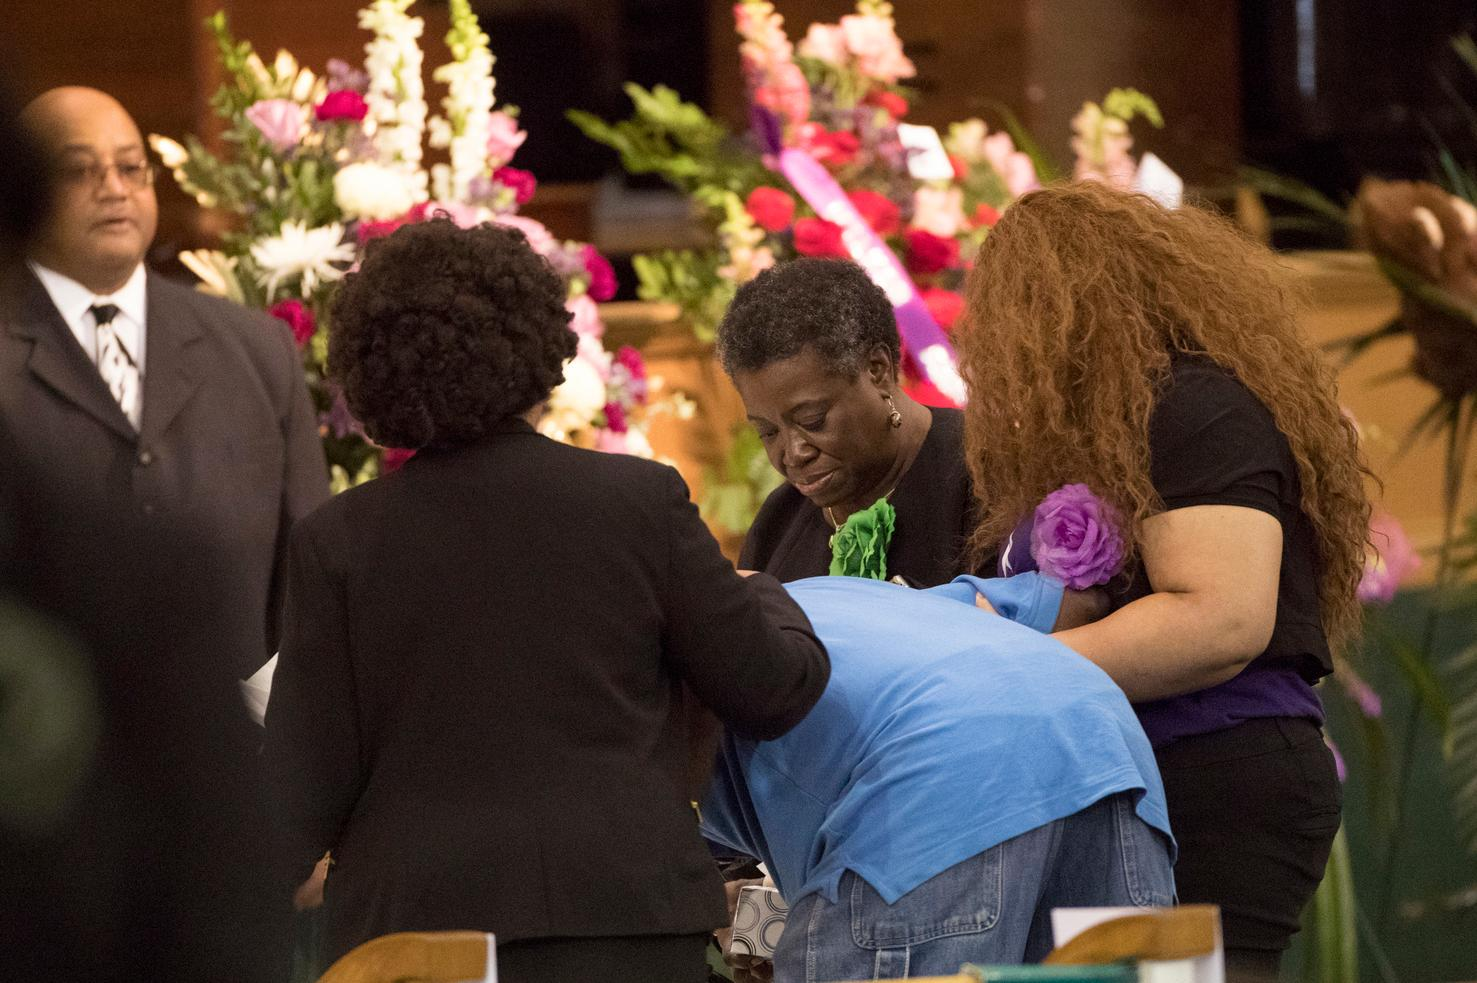 Three women hold a man as he becomes emotional approaching the casket of Jazmine Barnes during a viewing ceremony before the memorial services on Tuesday, Jan. 8, 2019 at the Community of Faith Church in Houston.  Barnes was fatally shot, Dec. 30, 2019,  while in a car with her family during an attack that investigators say appears to be a case of mistaken identity.  (Marie De Jesus/Houston Chronicle via AP)